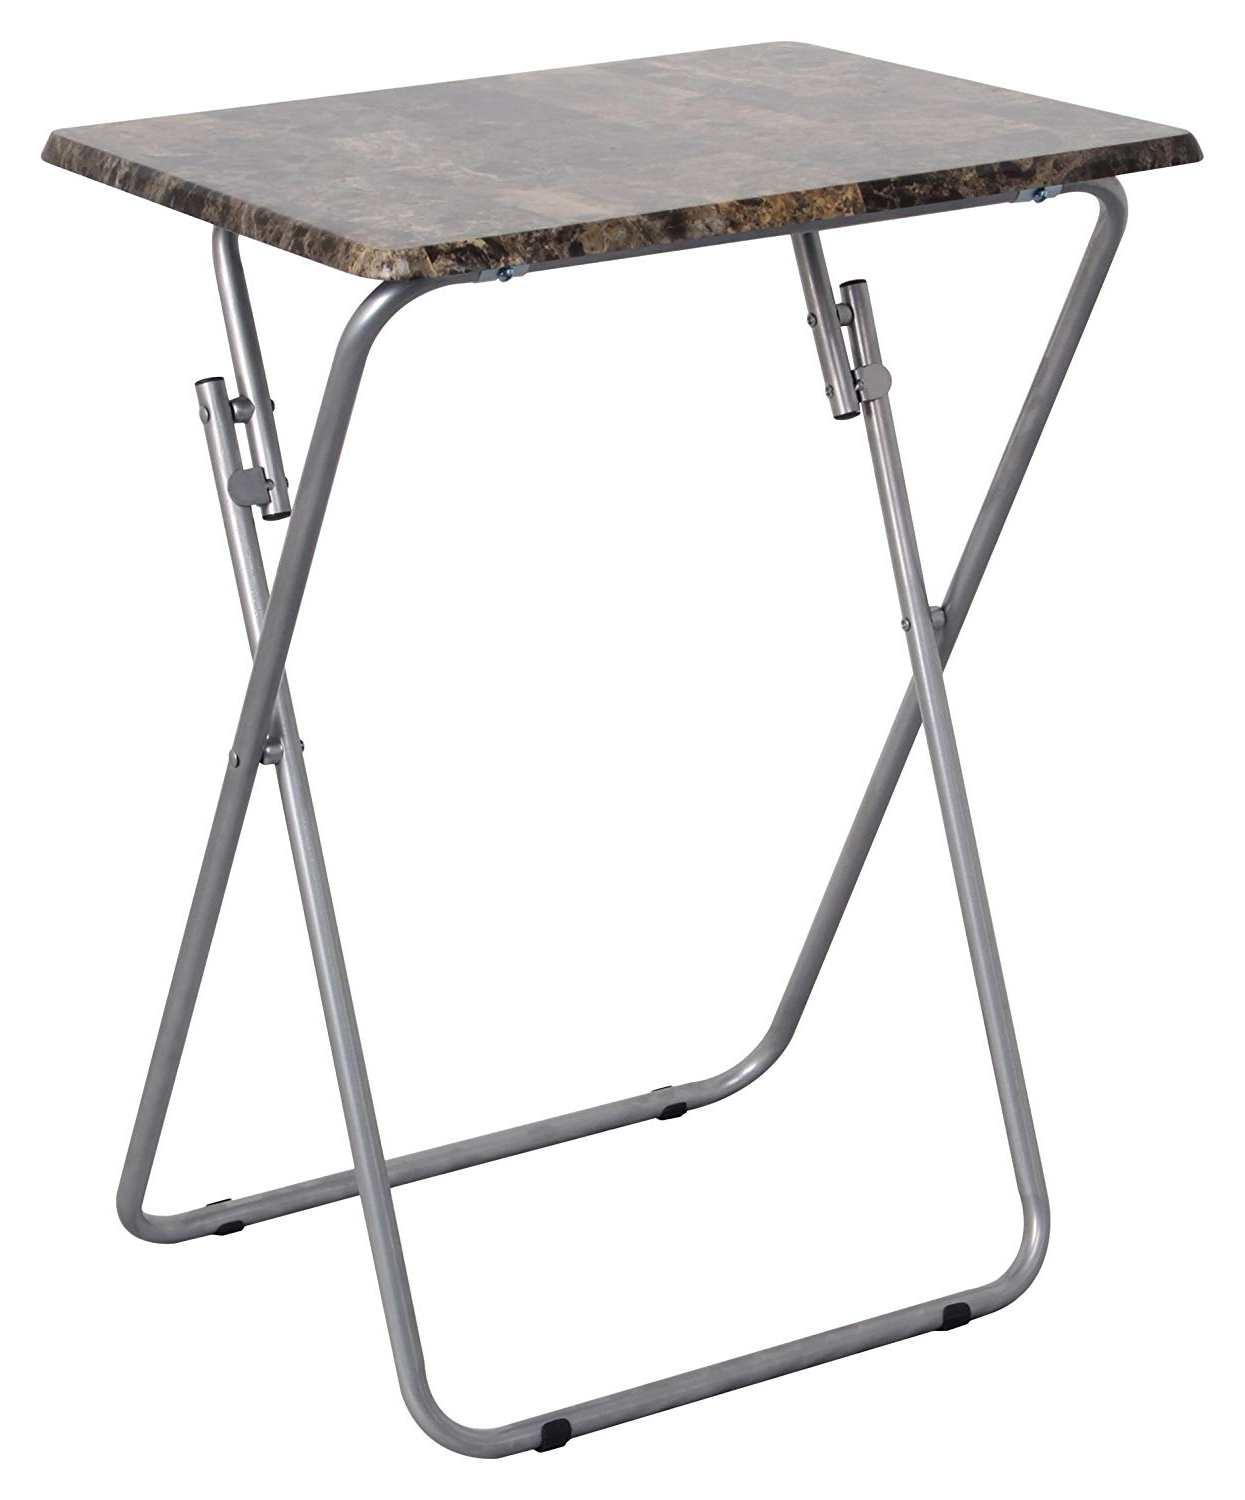 Amazon: Above Edge Folding Tv & Snack Tray Table, Marble: Garden Within Current Folding Tv Trays With Stand (View 4 of 20)